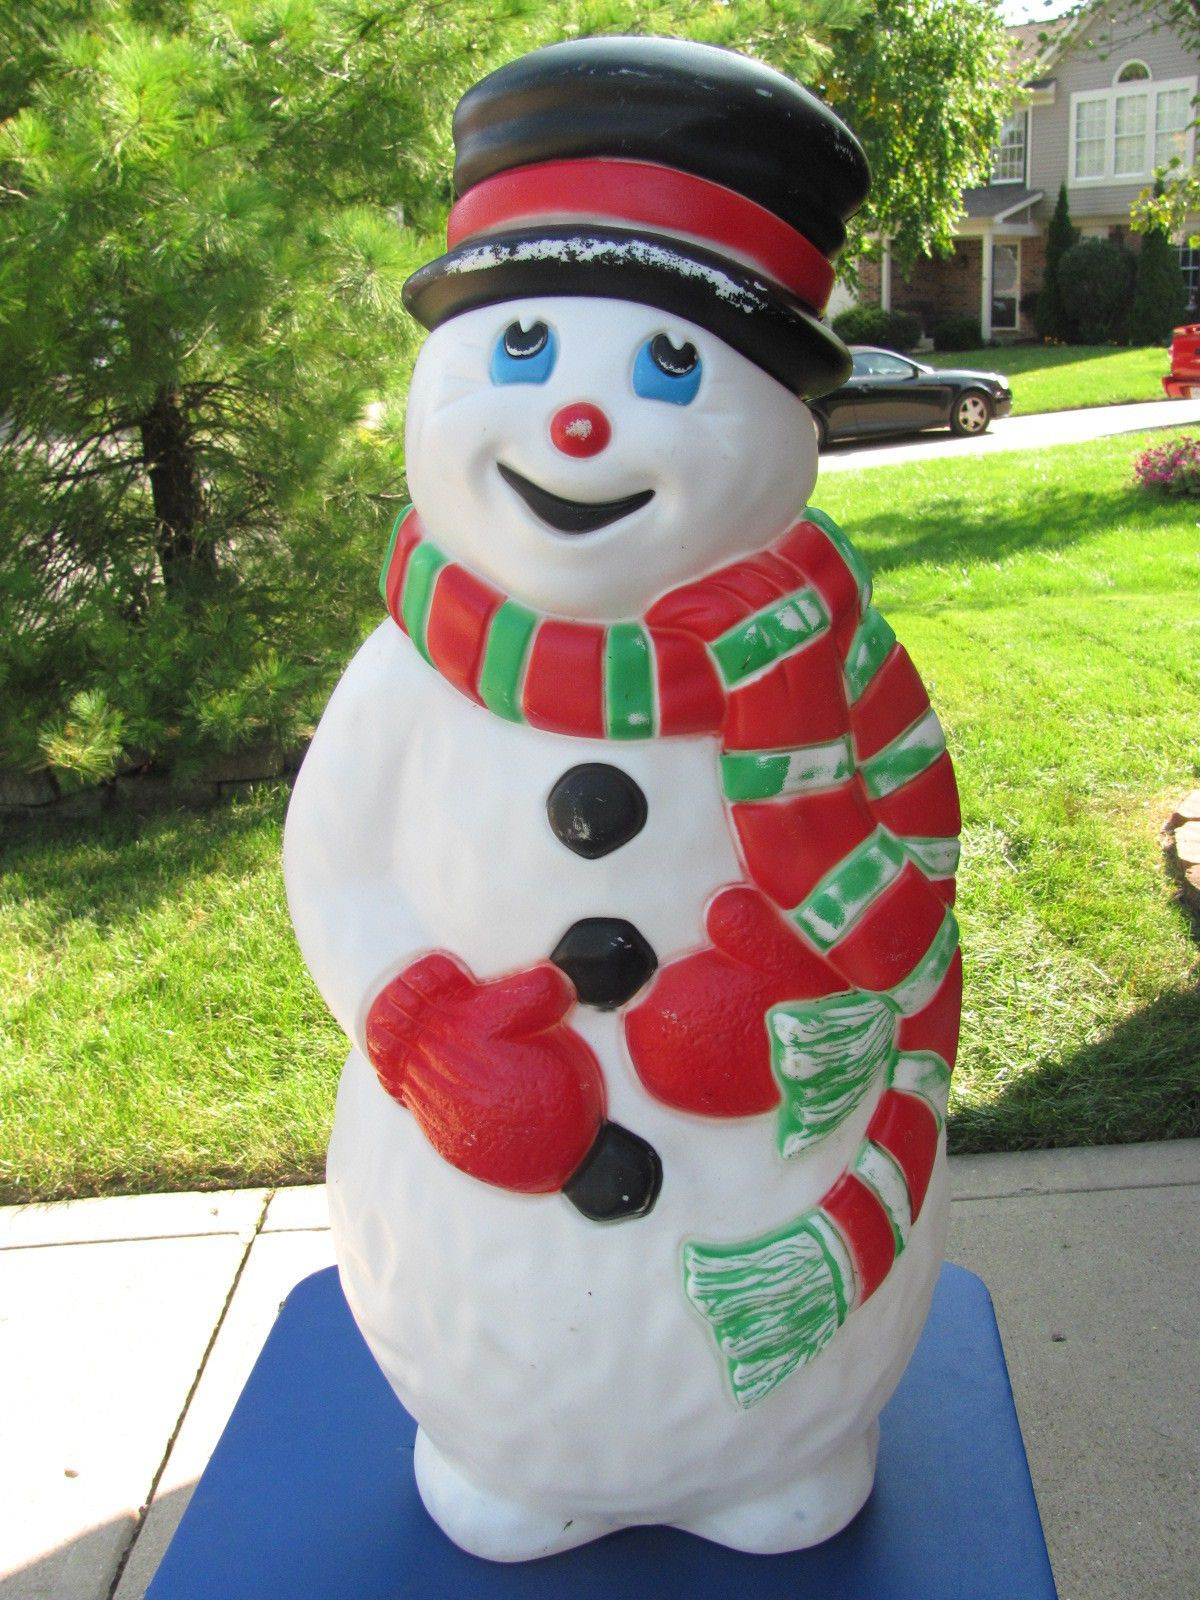 37 034 grand venture snowman red green xmas blowmold light up 37 034 grand venture snowman red green xmas blowmold light up plastic outdoor vtg ebay mozeypictures Image collections